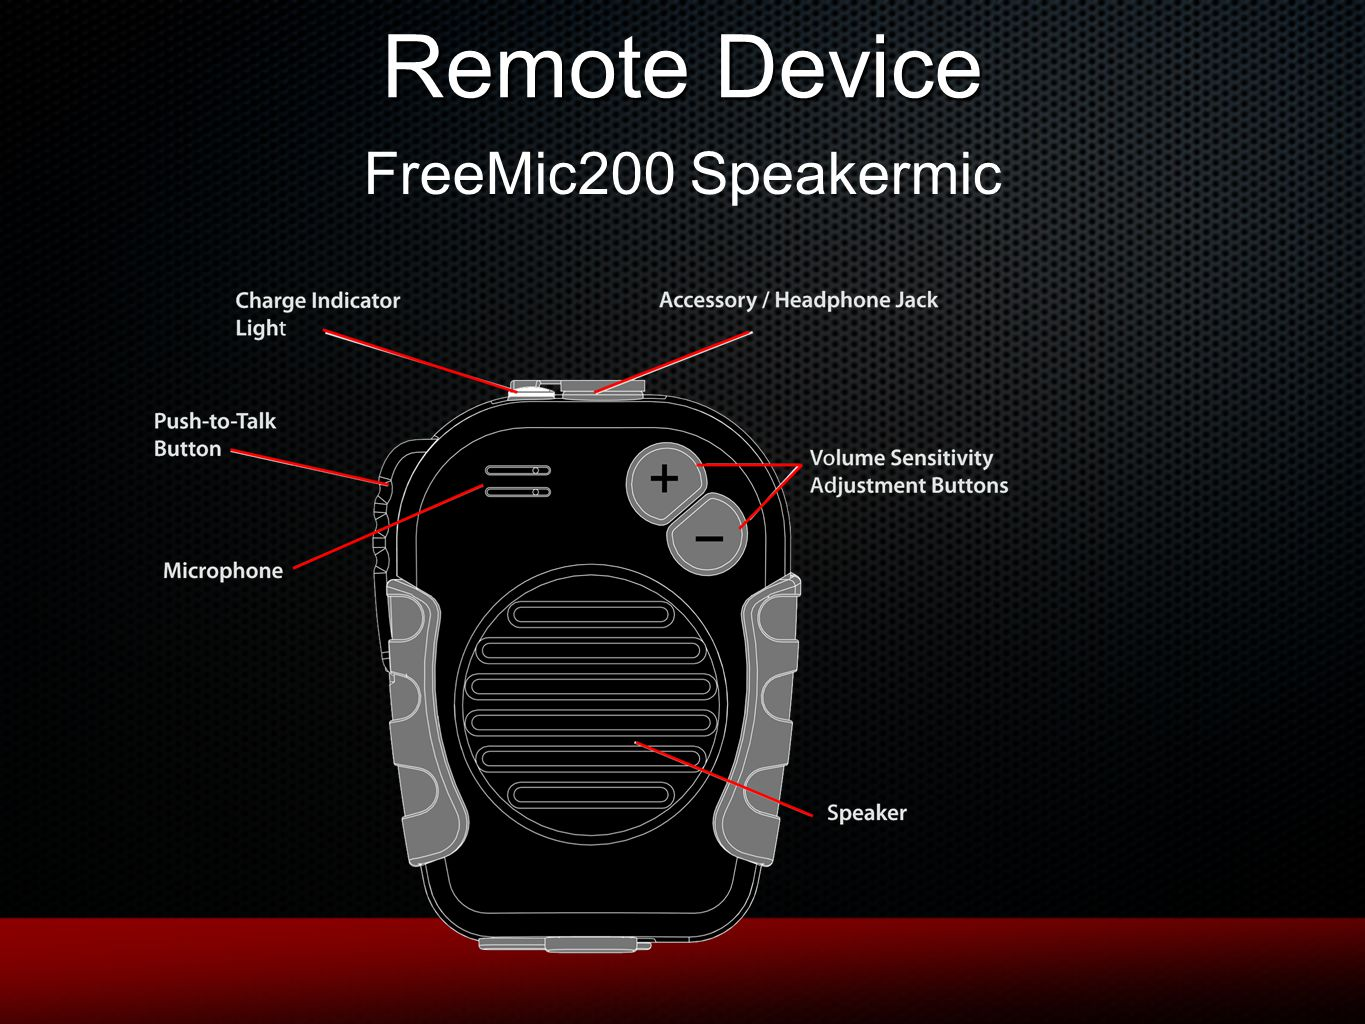 Remote Device FreeMic200 Speakermic